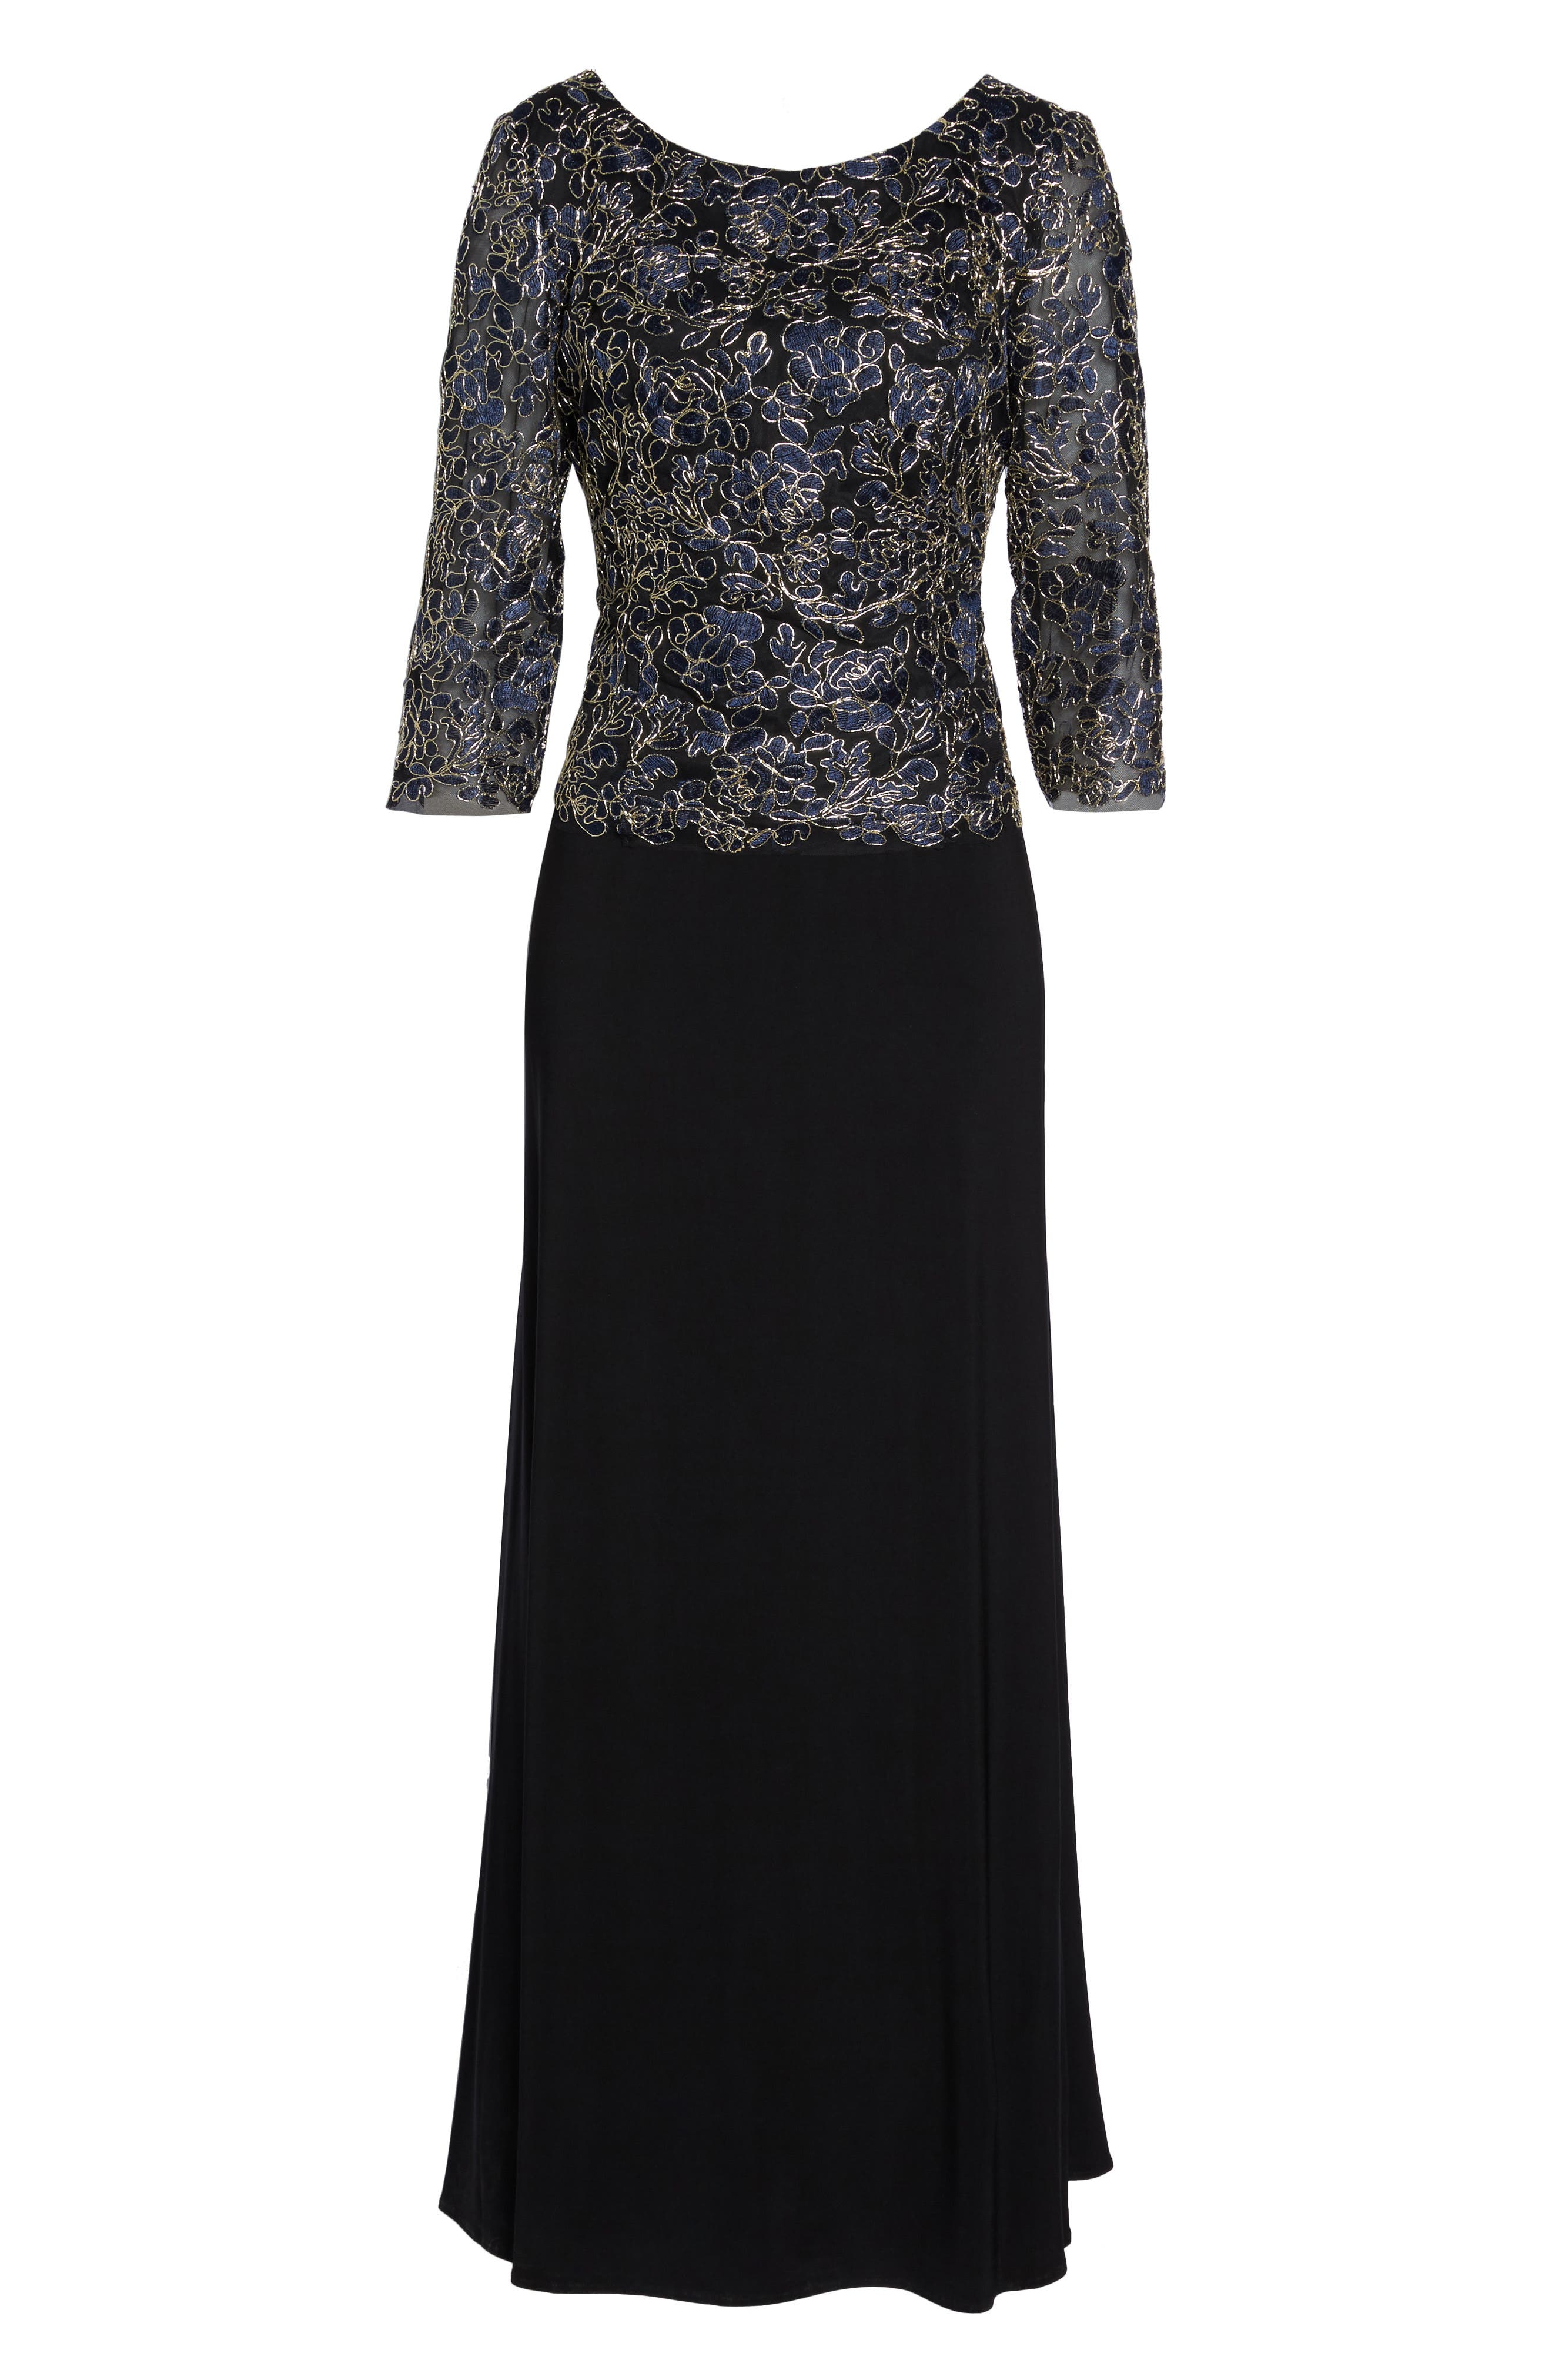 Embroidered Lace Mock Two-Piece Dress,                             Alternate thumbnail 6, color,                             Navy/ Gold